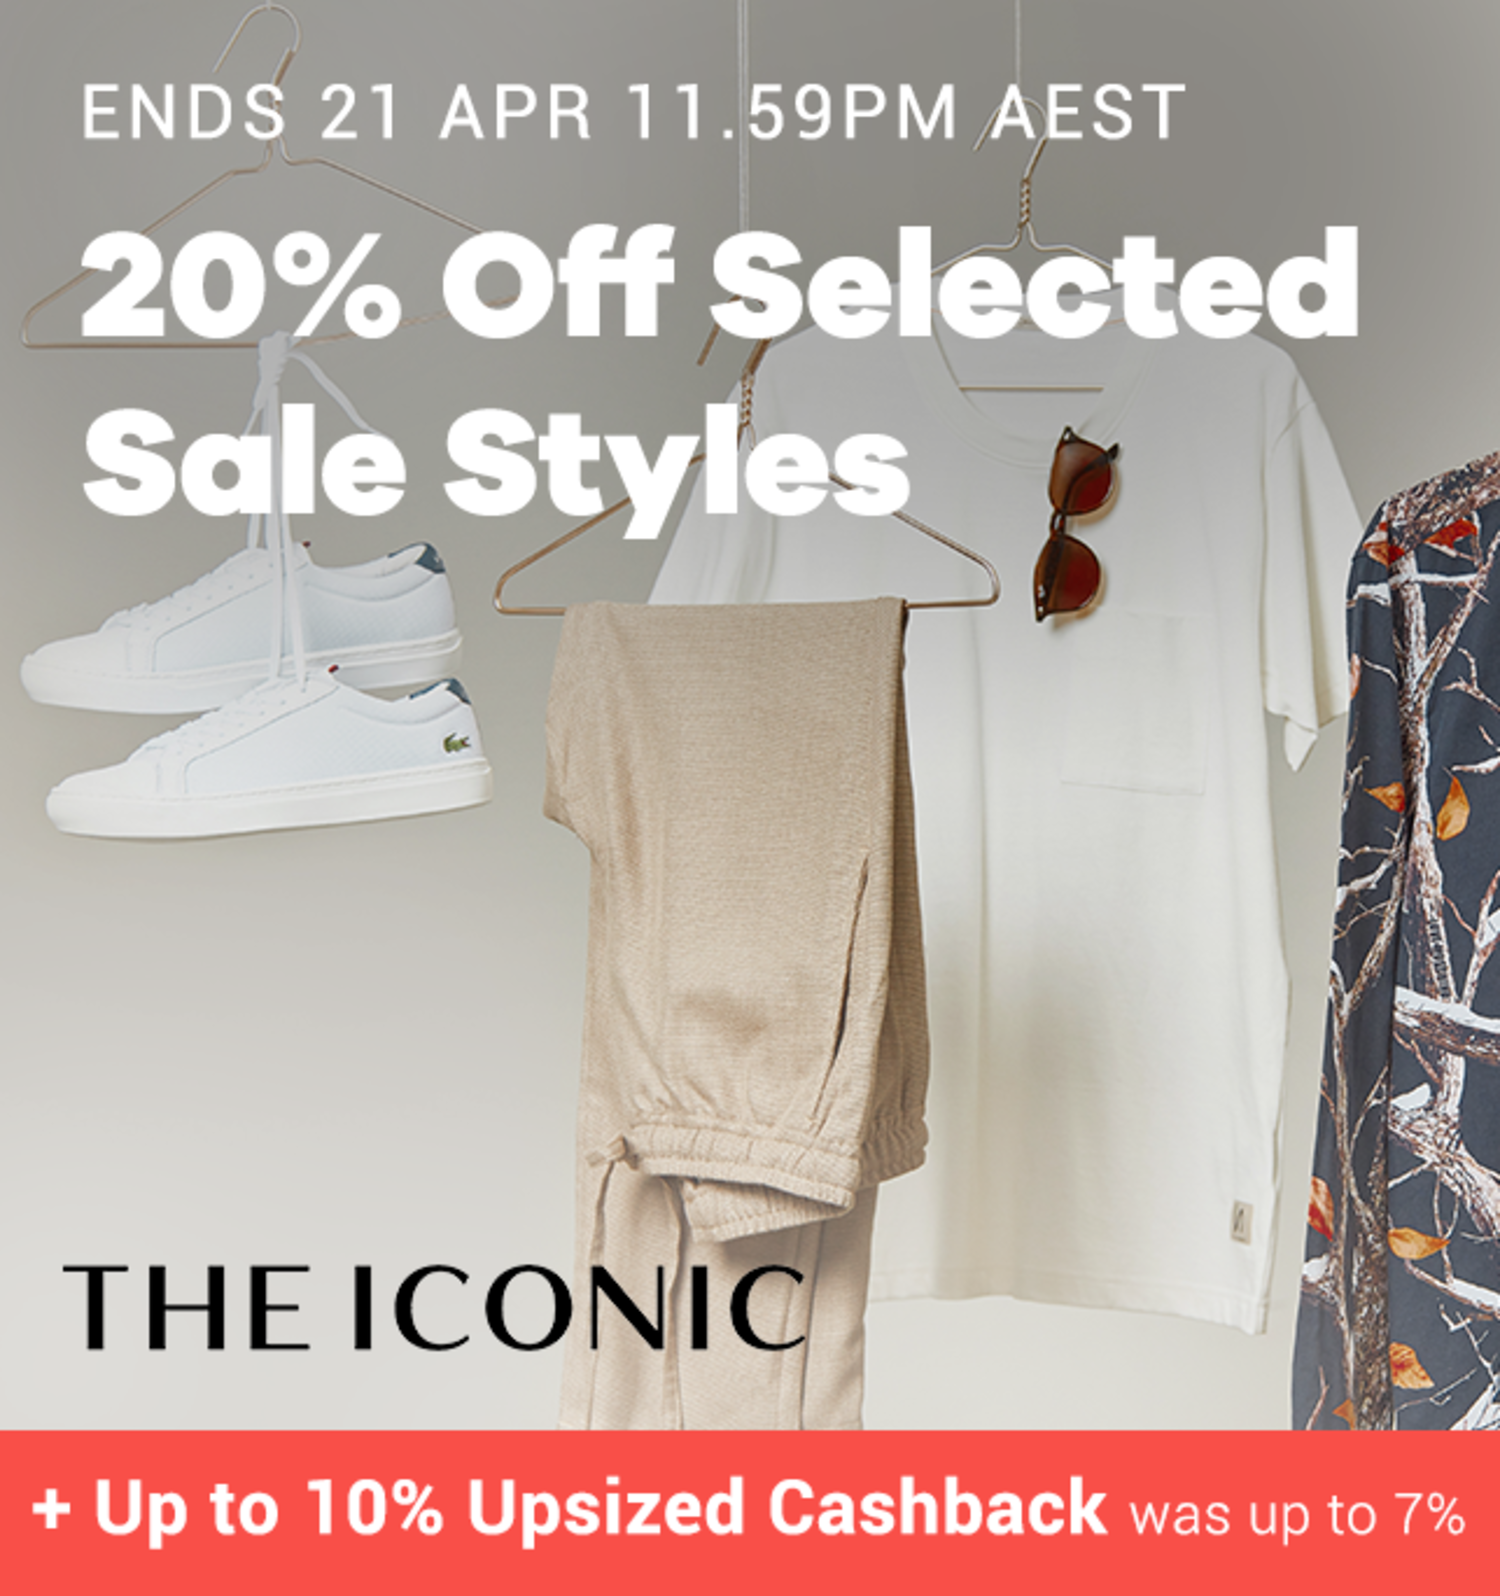 THE ICONIC - 20% off Selected Sale Styles - Birthday